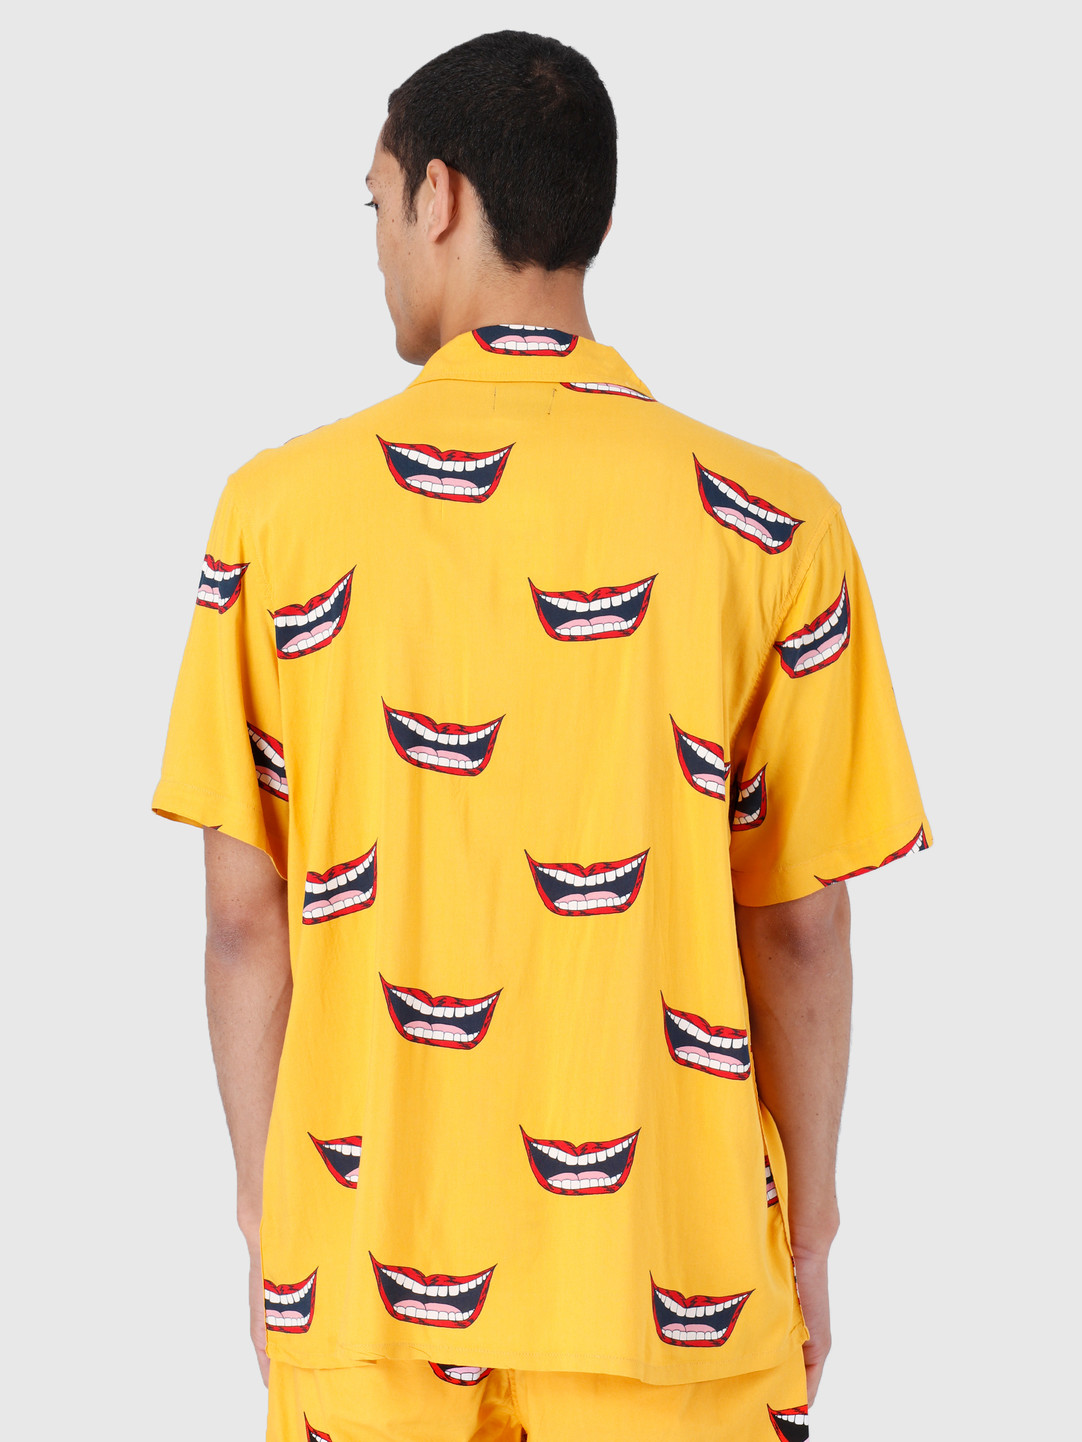 Obey Obey Lips Woven T-Shirts Mineral Yellow Multi 181210246-MRL